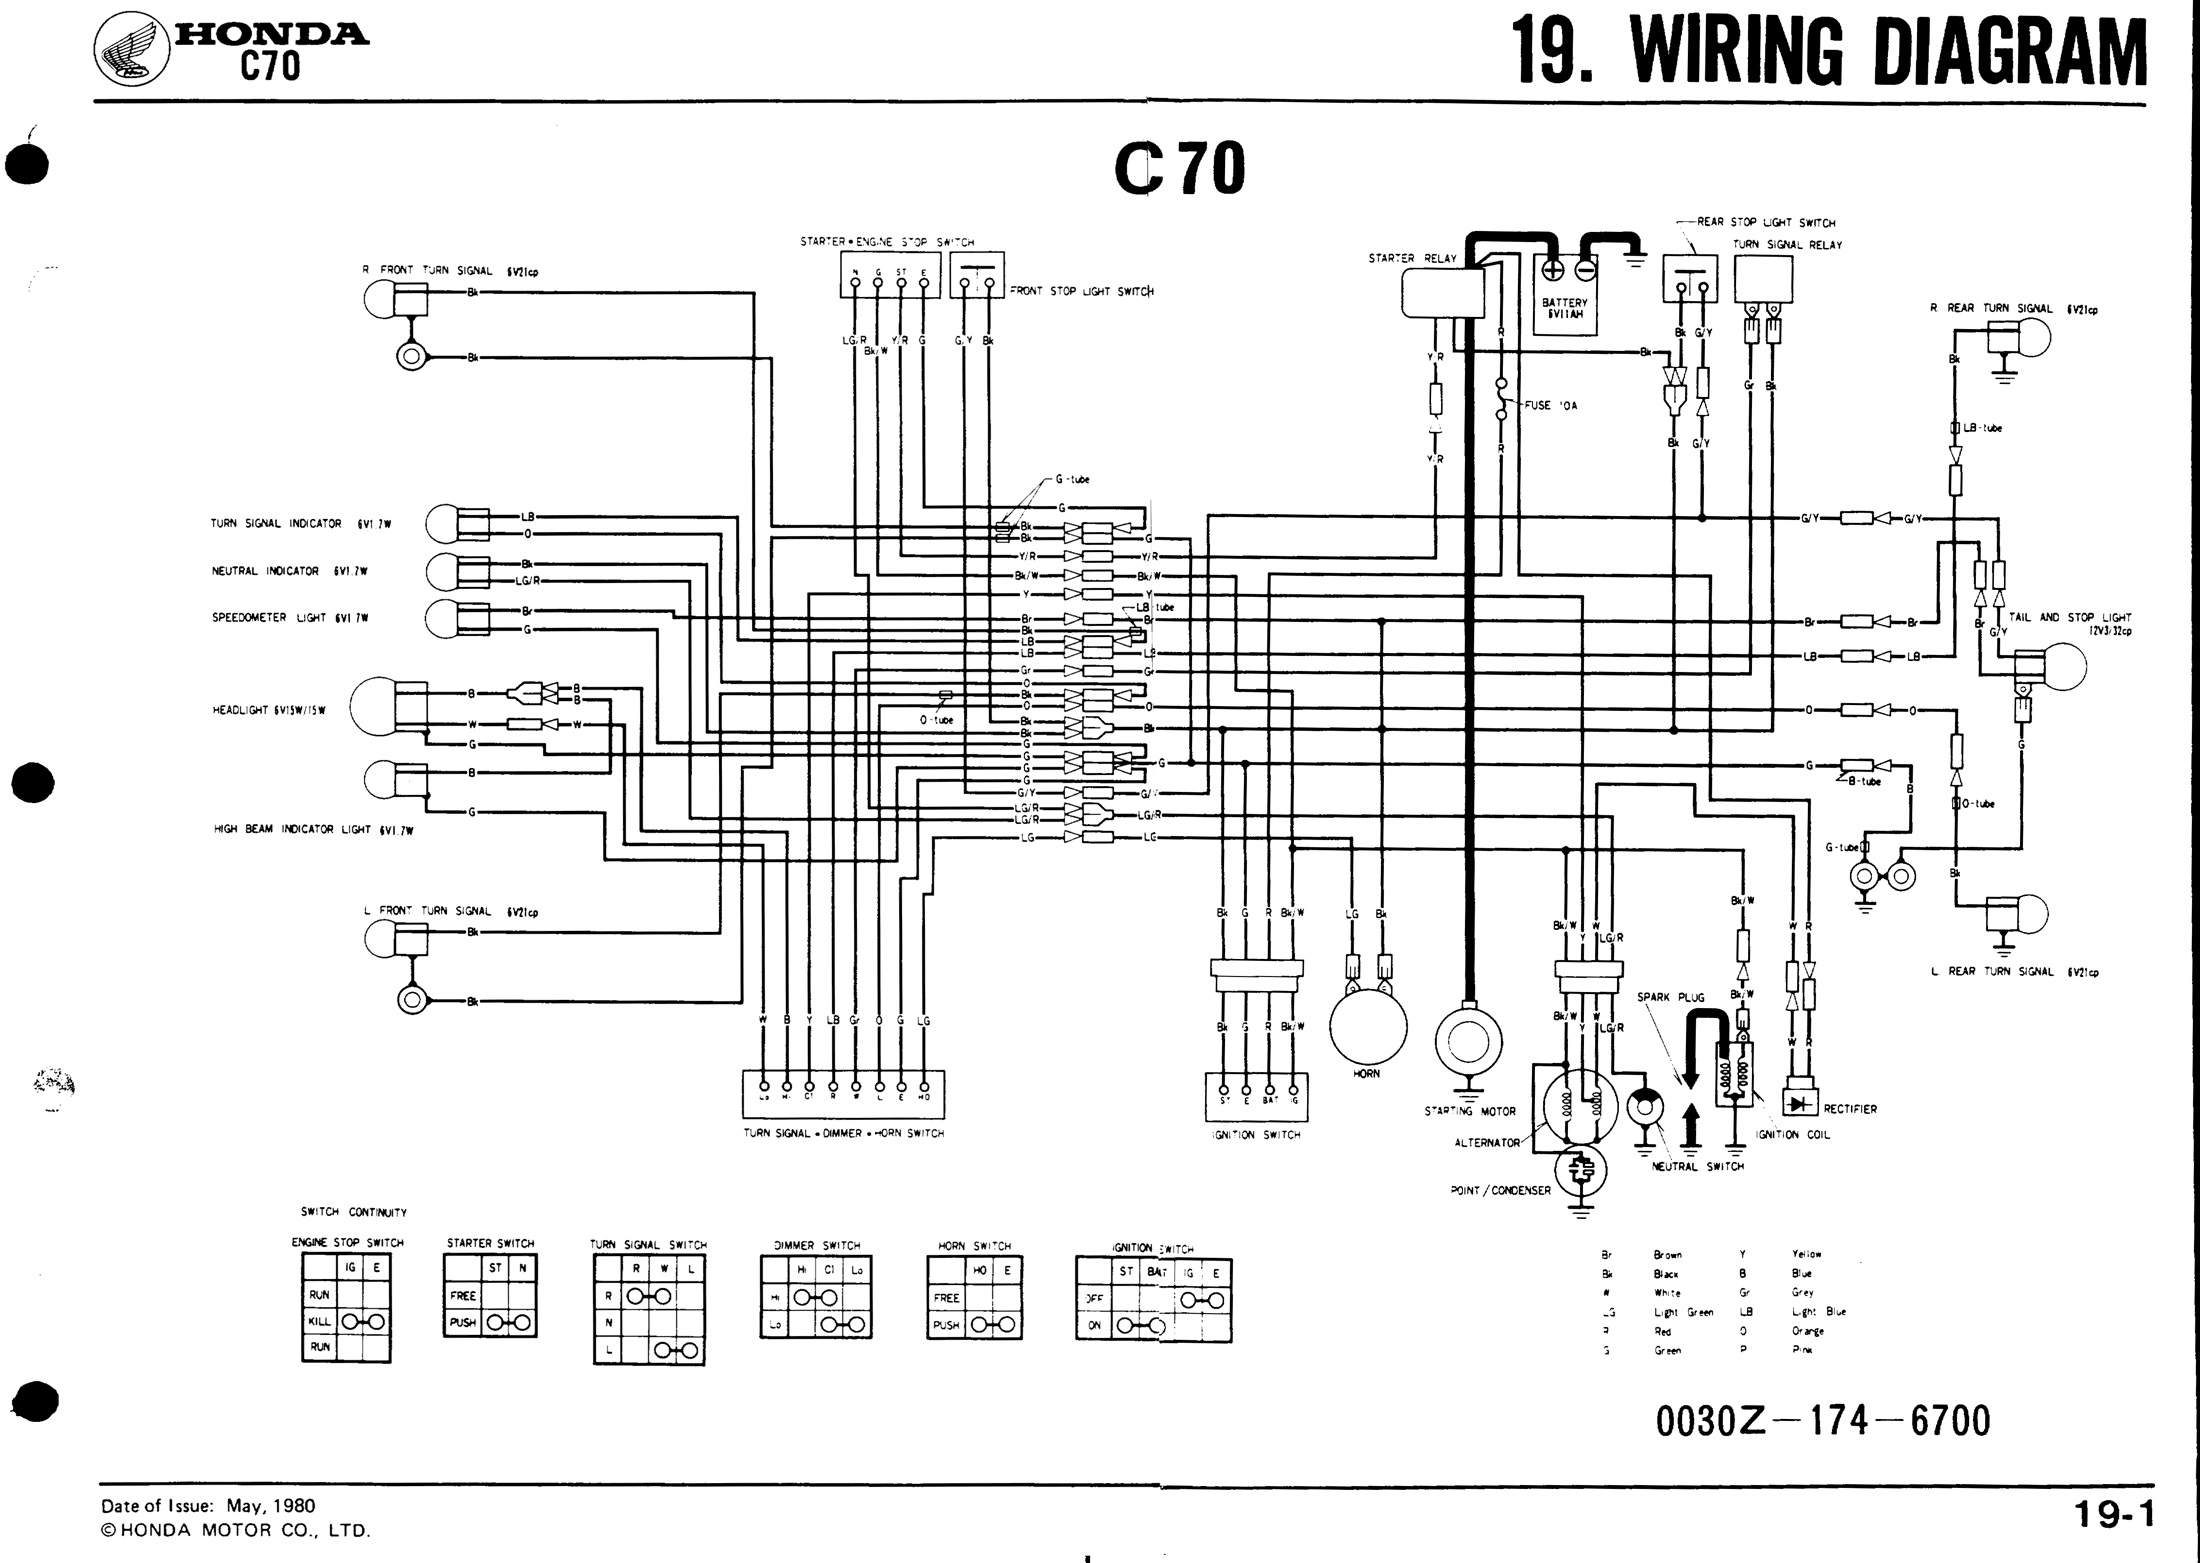 Klr250 blogspot additionally Universal Ignition Switch Wiring Diagram further Club Car Wiring Diagram 36 Volt For Basic Ezgo Electric Golf Cart In Ez Go Golf Cart Parts Diagram also Item125781644 together with Simple Home Electrical Wire Diagrams. on electric motorcycle wiring diagram